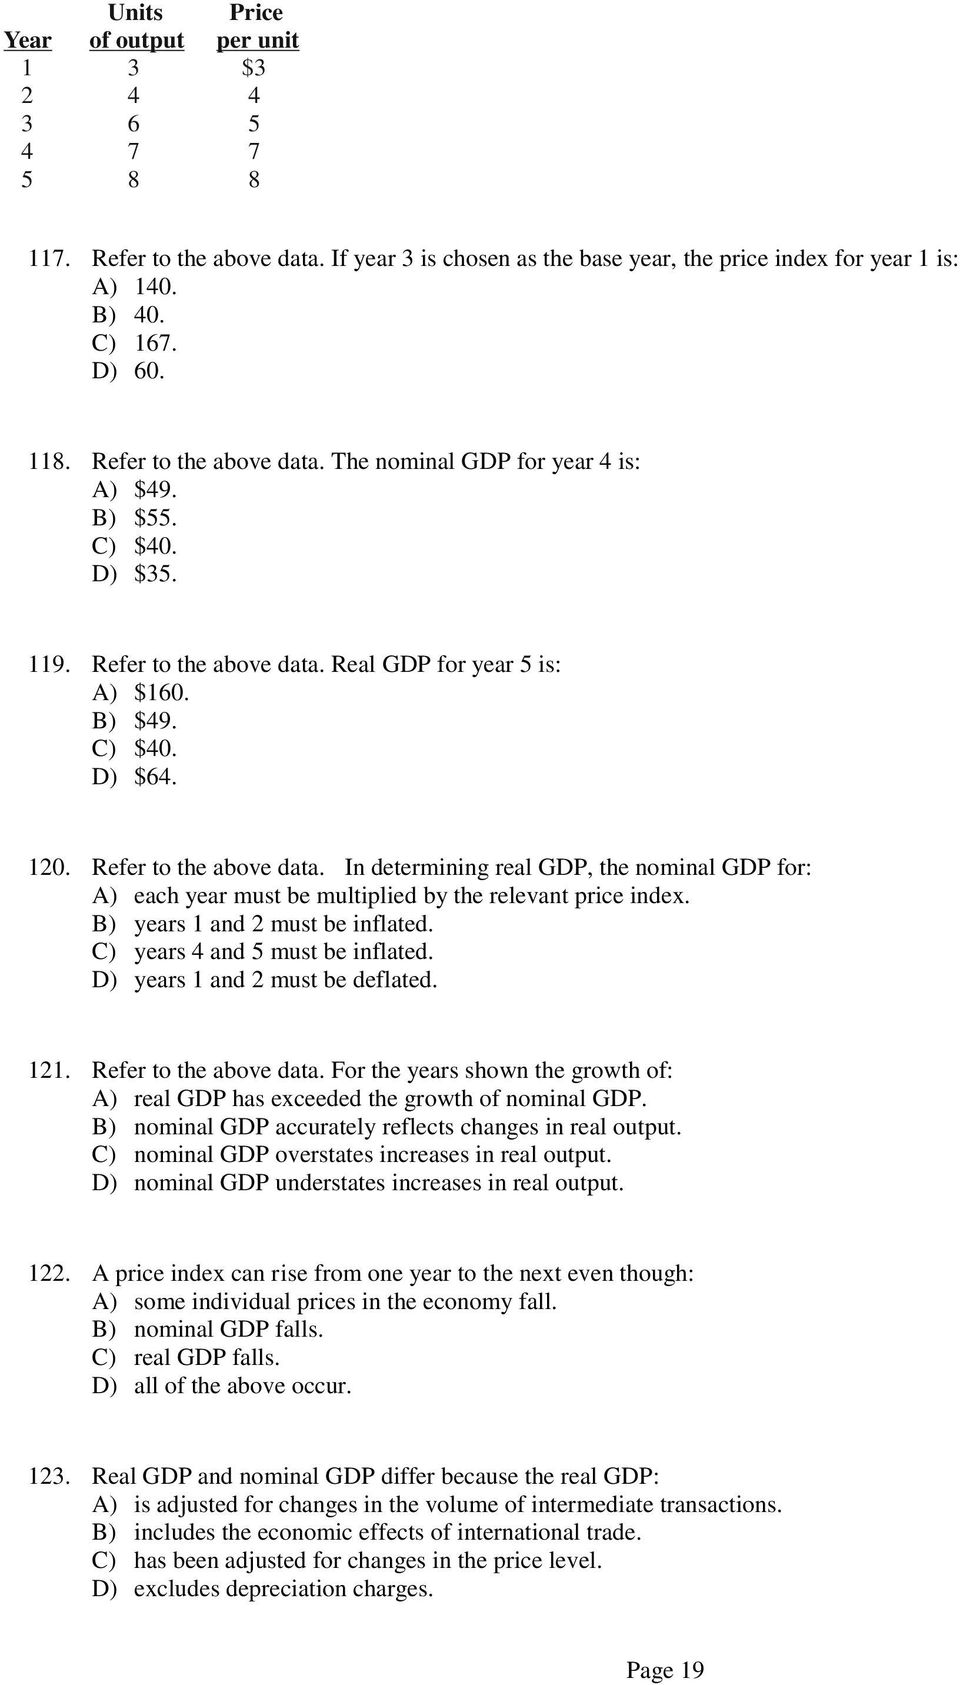 Refer to the above data. In determining real GDP, the nominal GDP for: A) each year must be multiplied by the relevant price index. B) years 1 and 2 must be inflated.